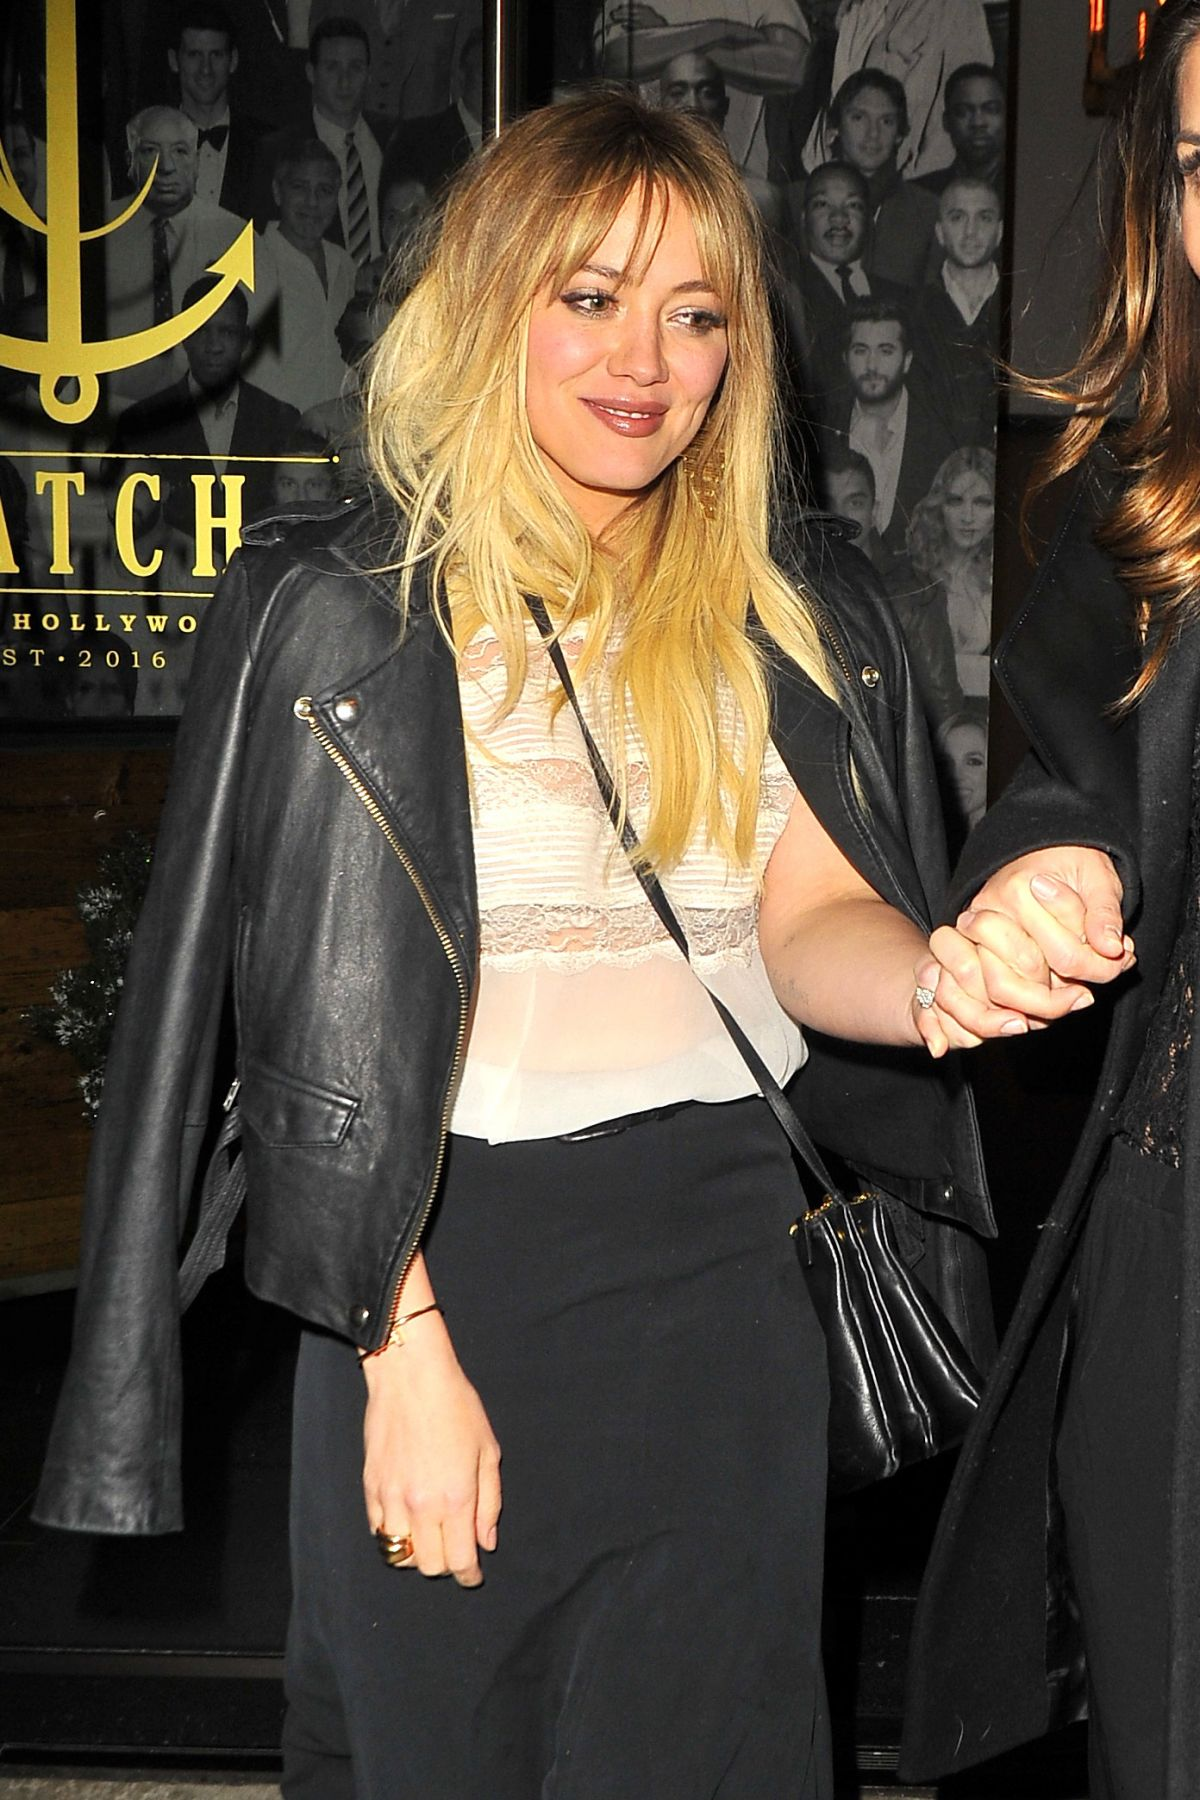 HILARY DUFF at Catch LA in West Hollywood 12/17/2016